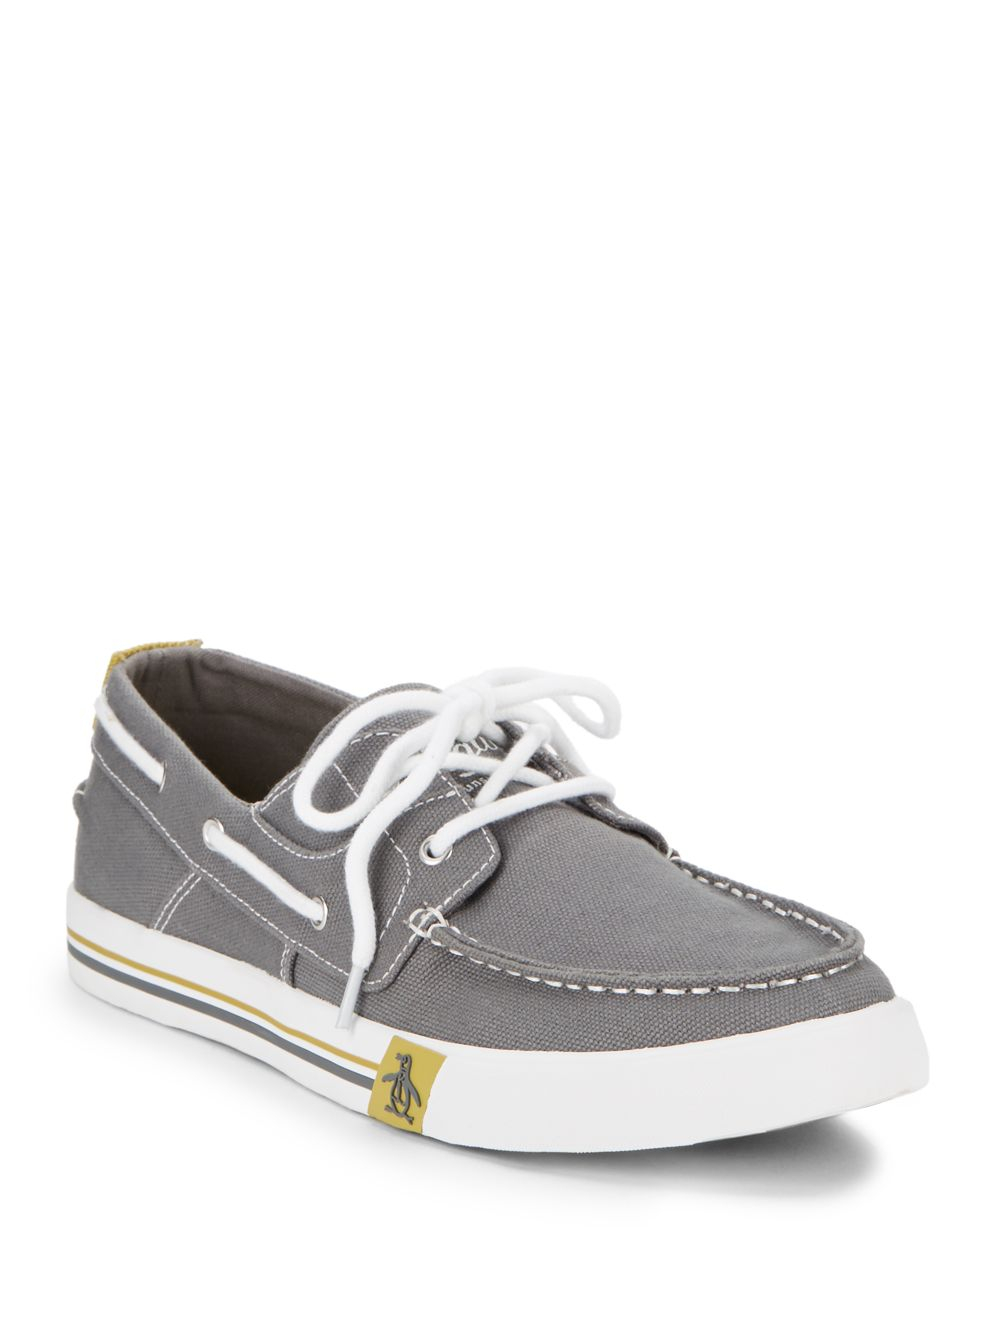 Overstock uses cookies to ensure you get the best experience on our site. If you continue on our site, you consent to the use of such cookies. Learn more. OK Shoes by Sperry. Clothing & Shoes / Shoes. of Results Sperry Men's Top-Sider Charcoal/Navy Canvas Striper Slip-on Casual Shoe.